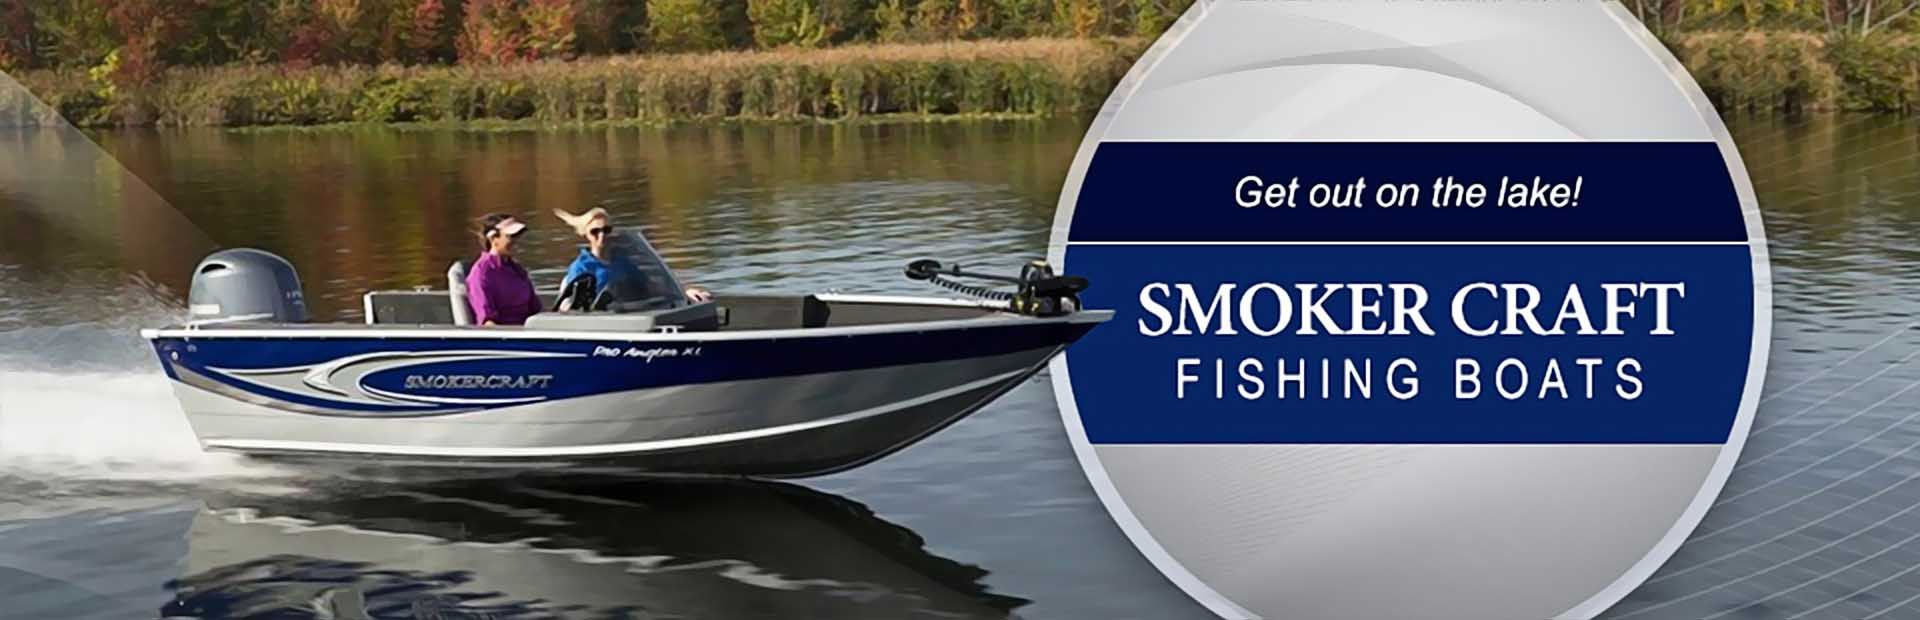 Smoker Craft Fishing Boats: Click here to view the models.